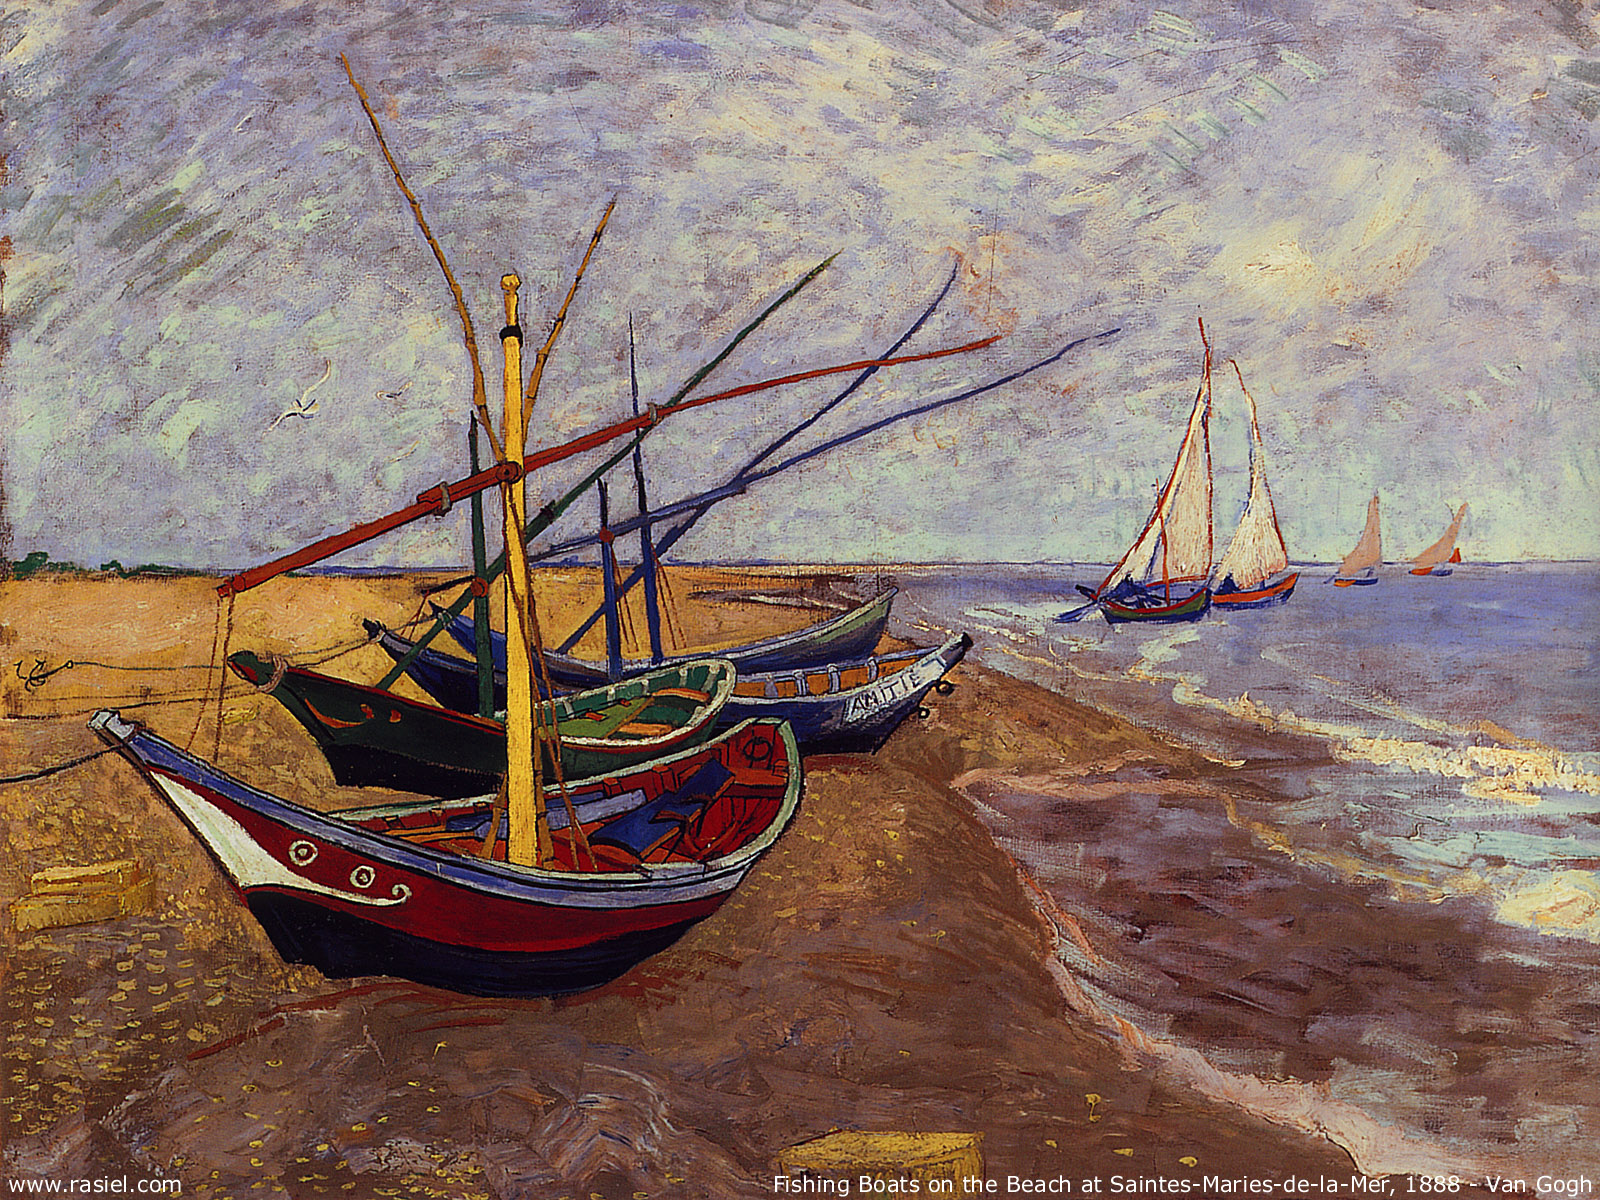 Fishing Boats on the Beach at Saintes-Maries, 1888 -Vincent van Gogh (1853–1890)